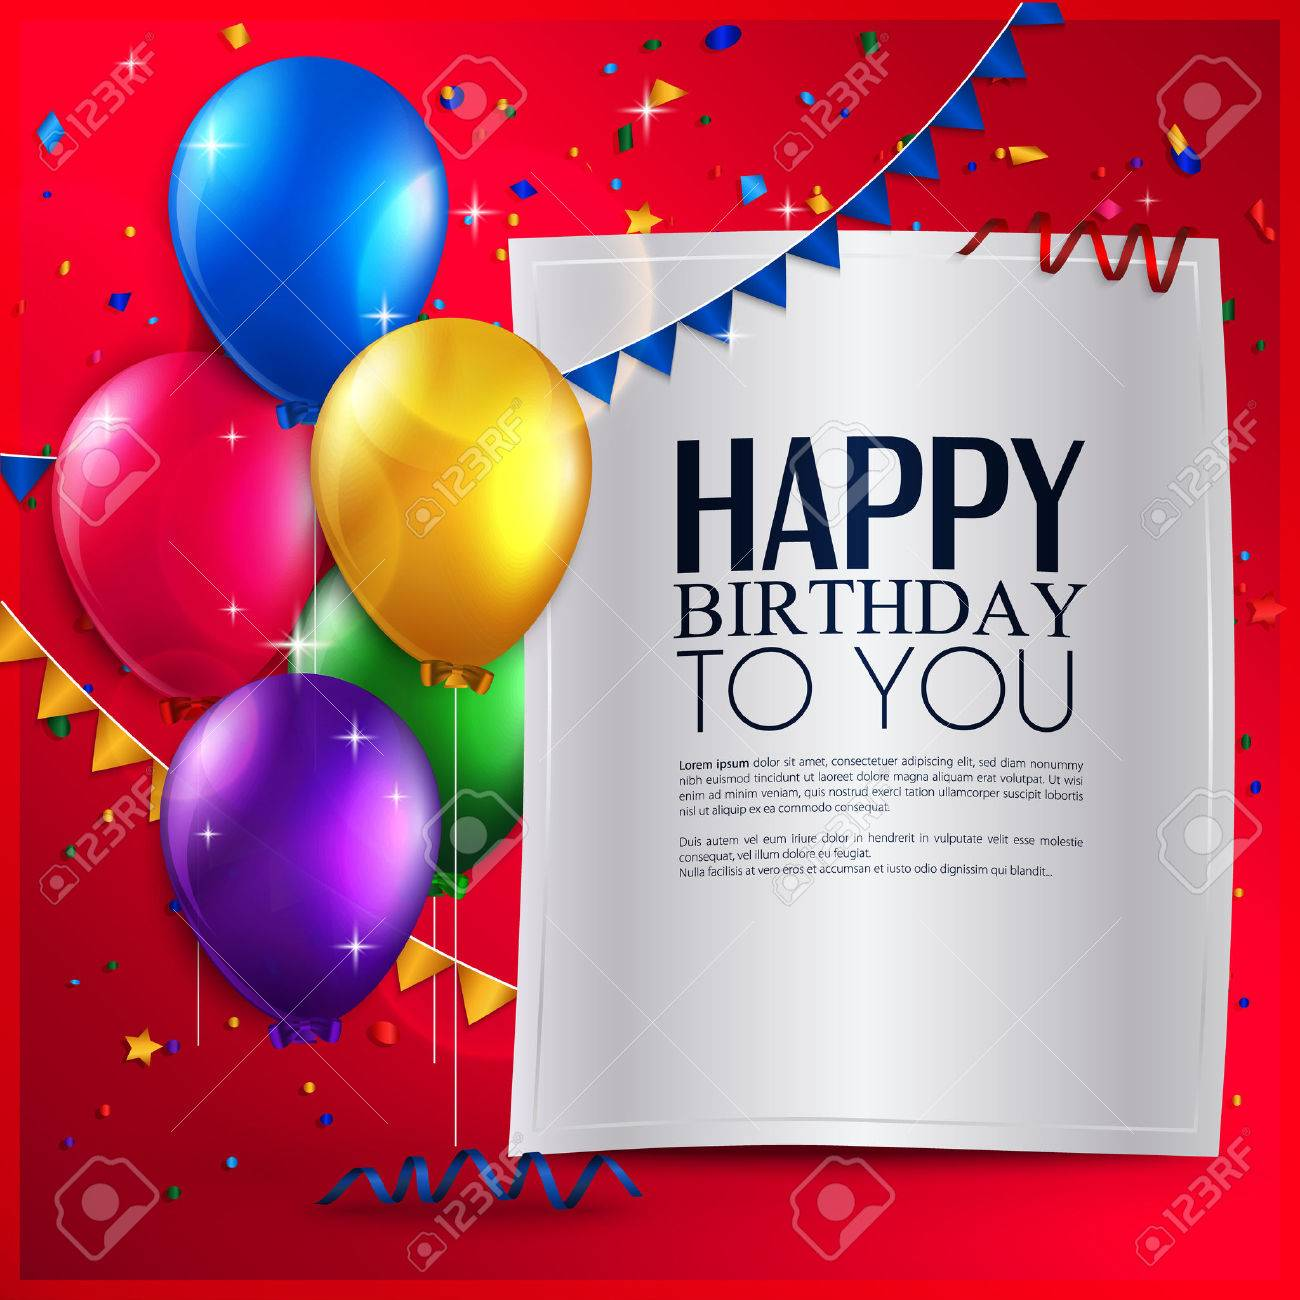 Vector Birthday Card With Balloons And Birthday Text On Red – Vector Birthday Card